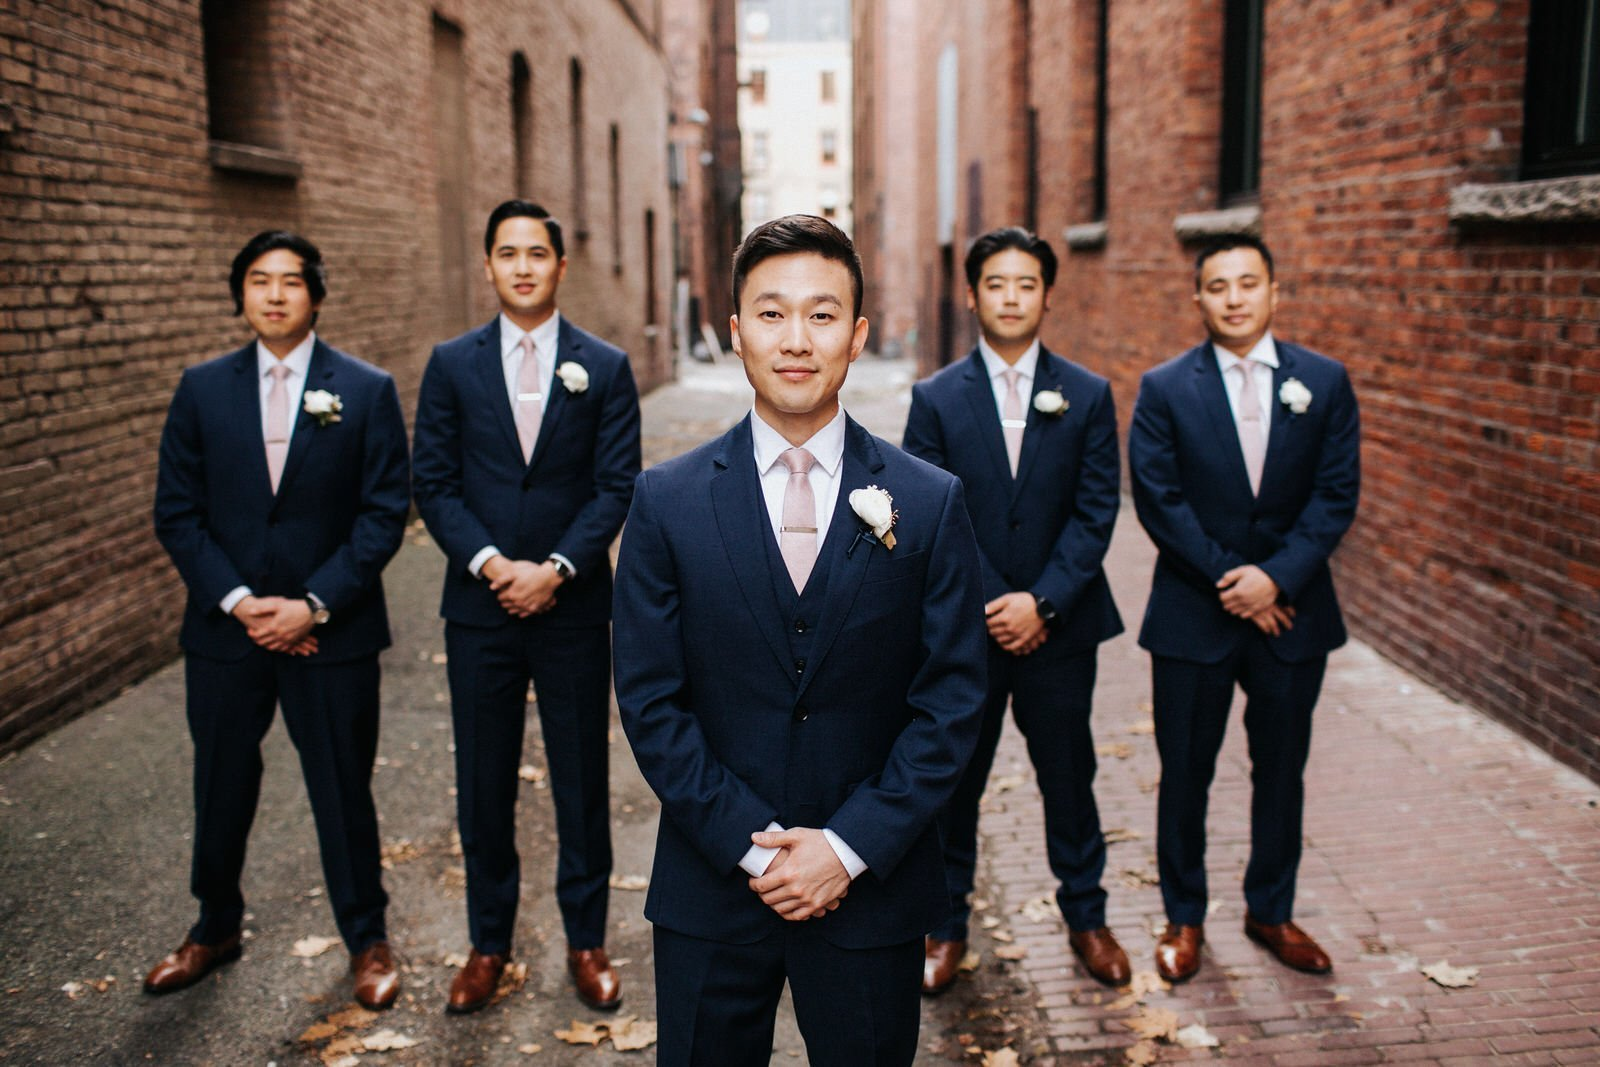 The groomsmen pose in pioneer square before their wedding